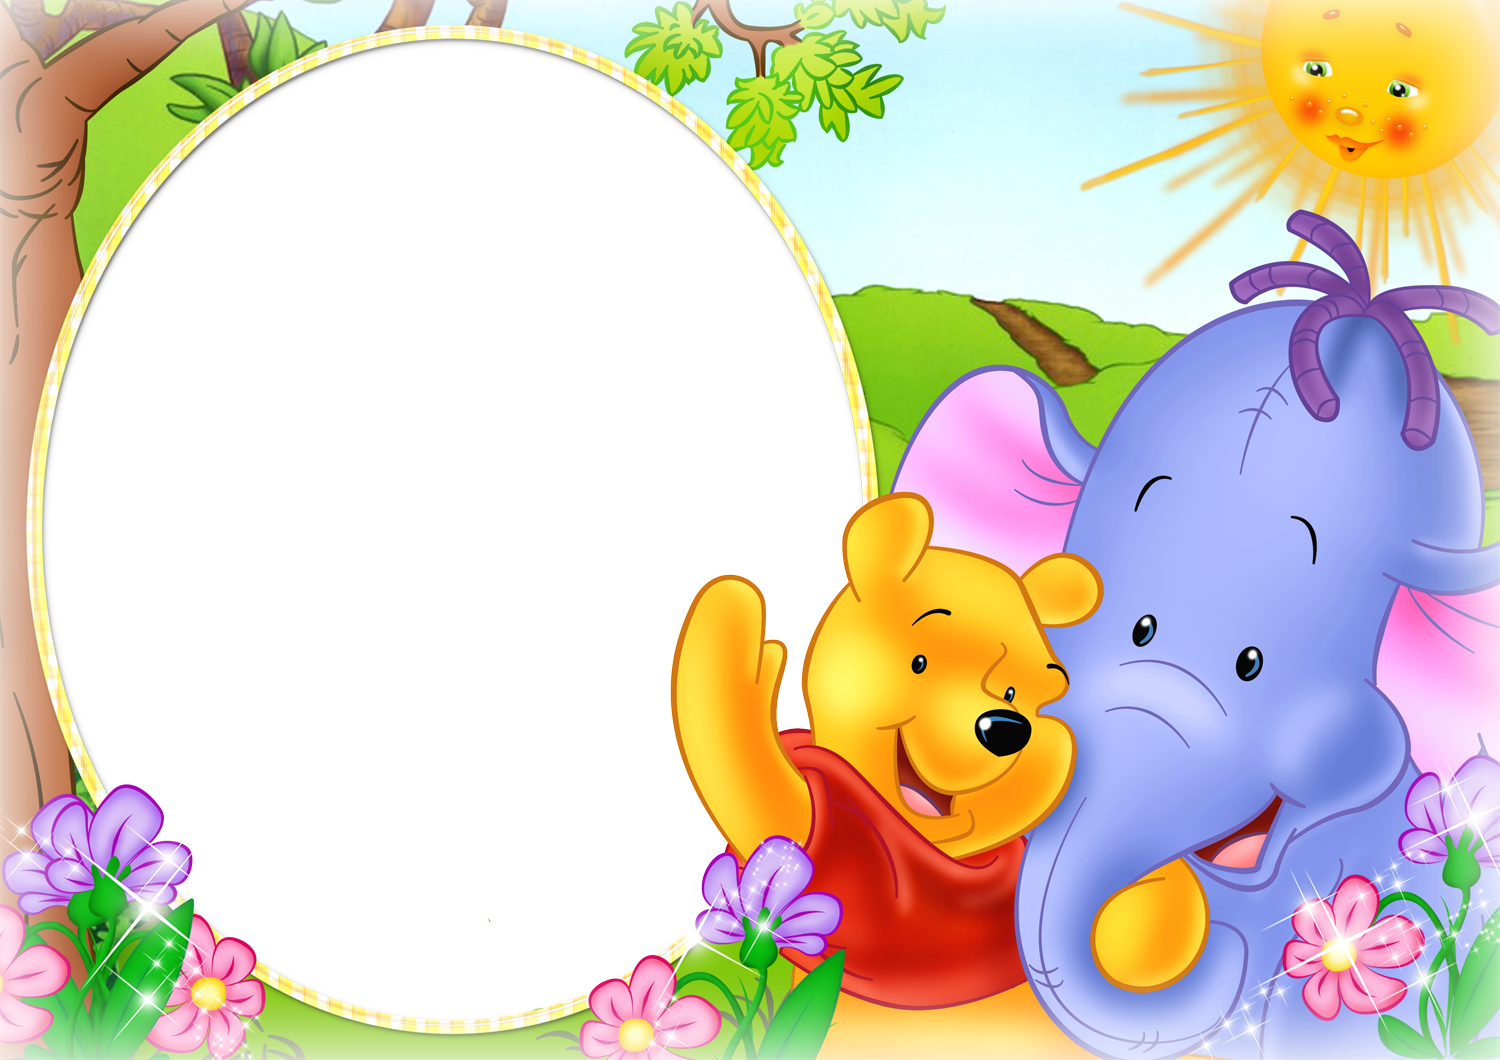 Frame clipart winnie the pooh Photo PNG Cute size